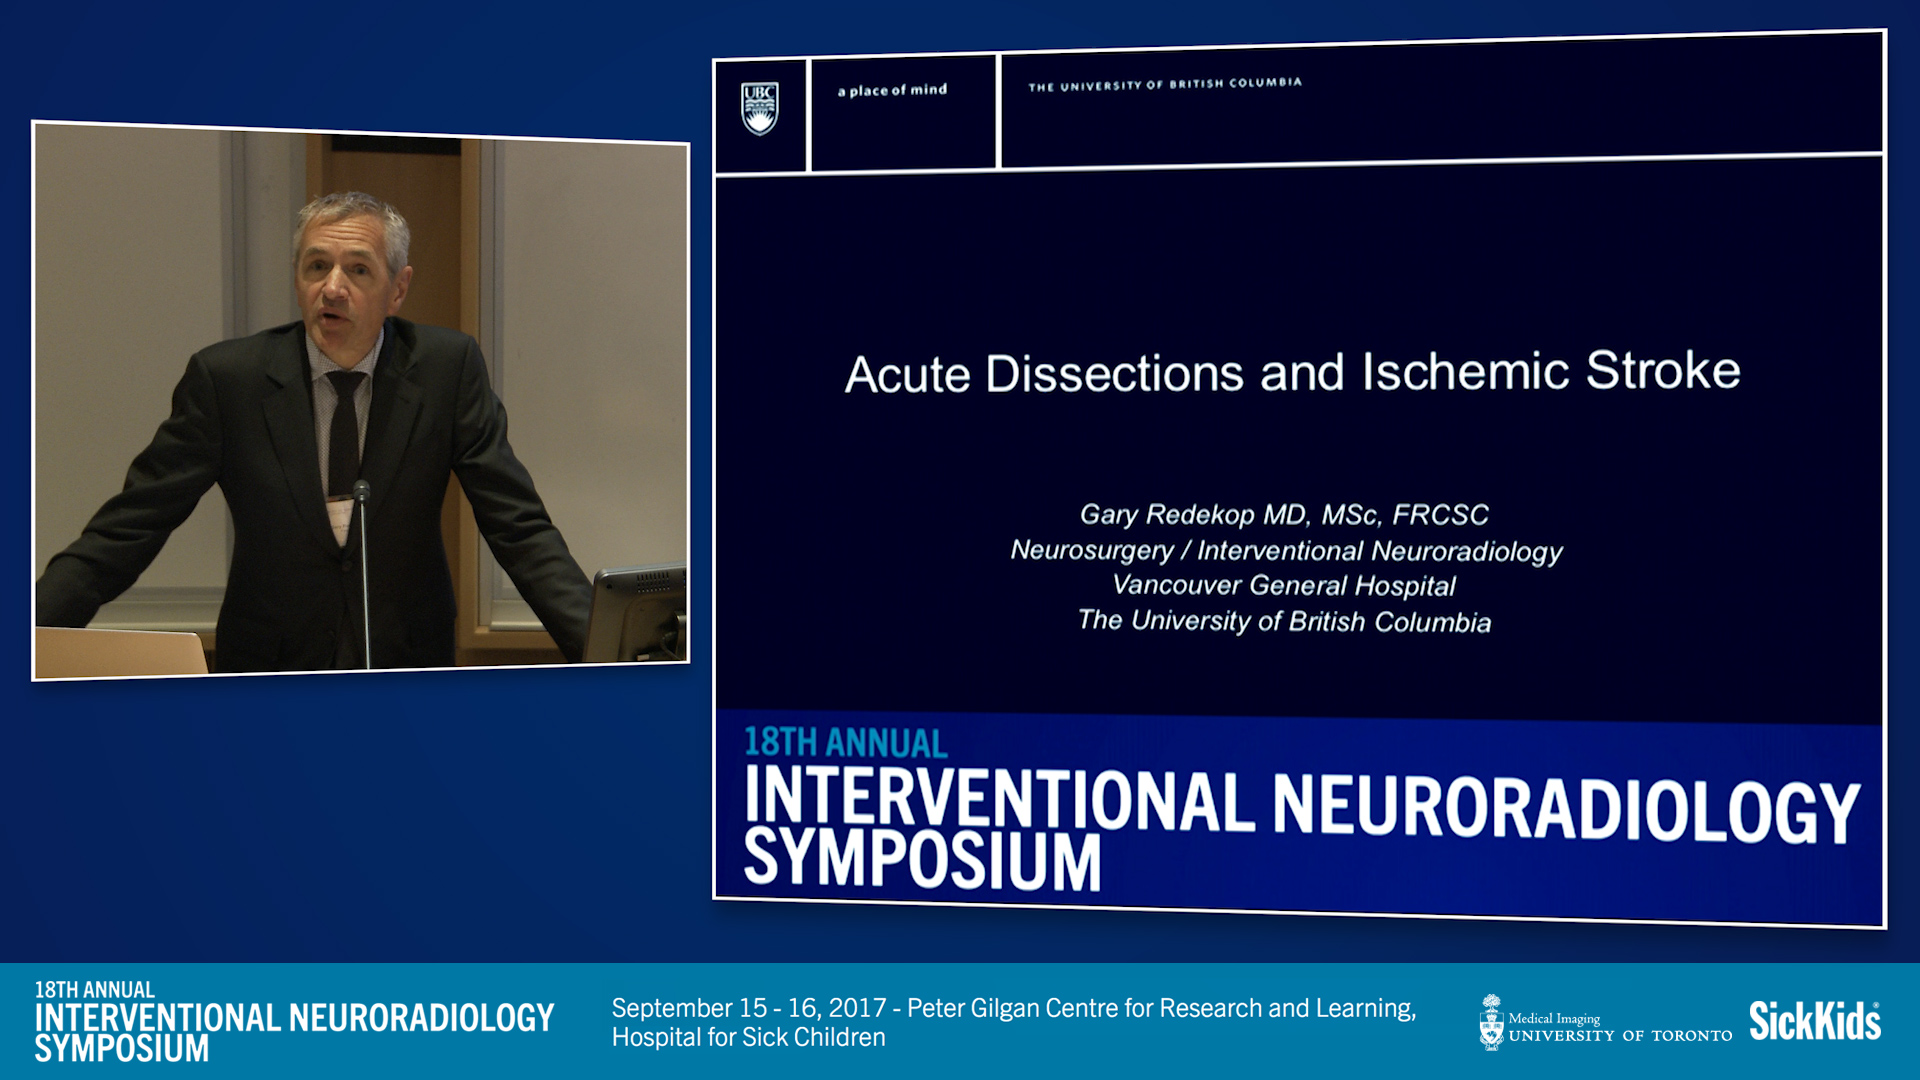 Interventional Neuroradiology Symposium 2017 - Neurovascular